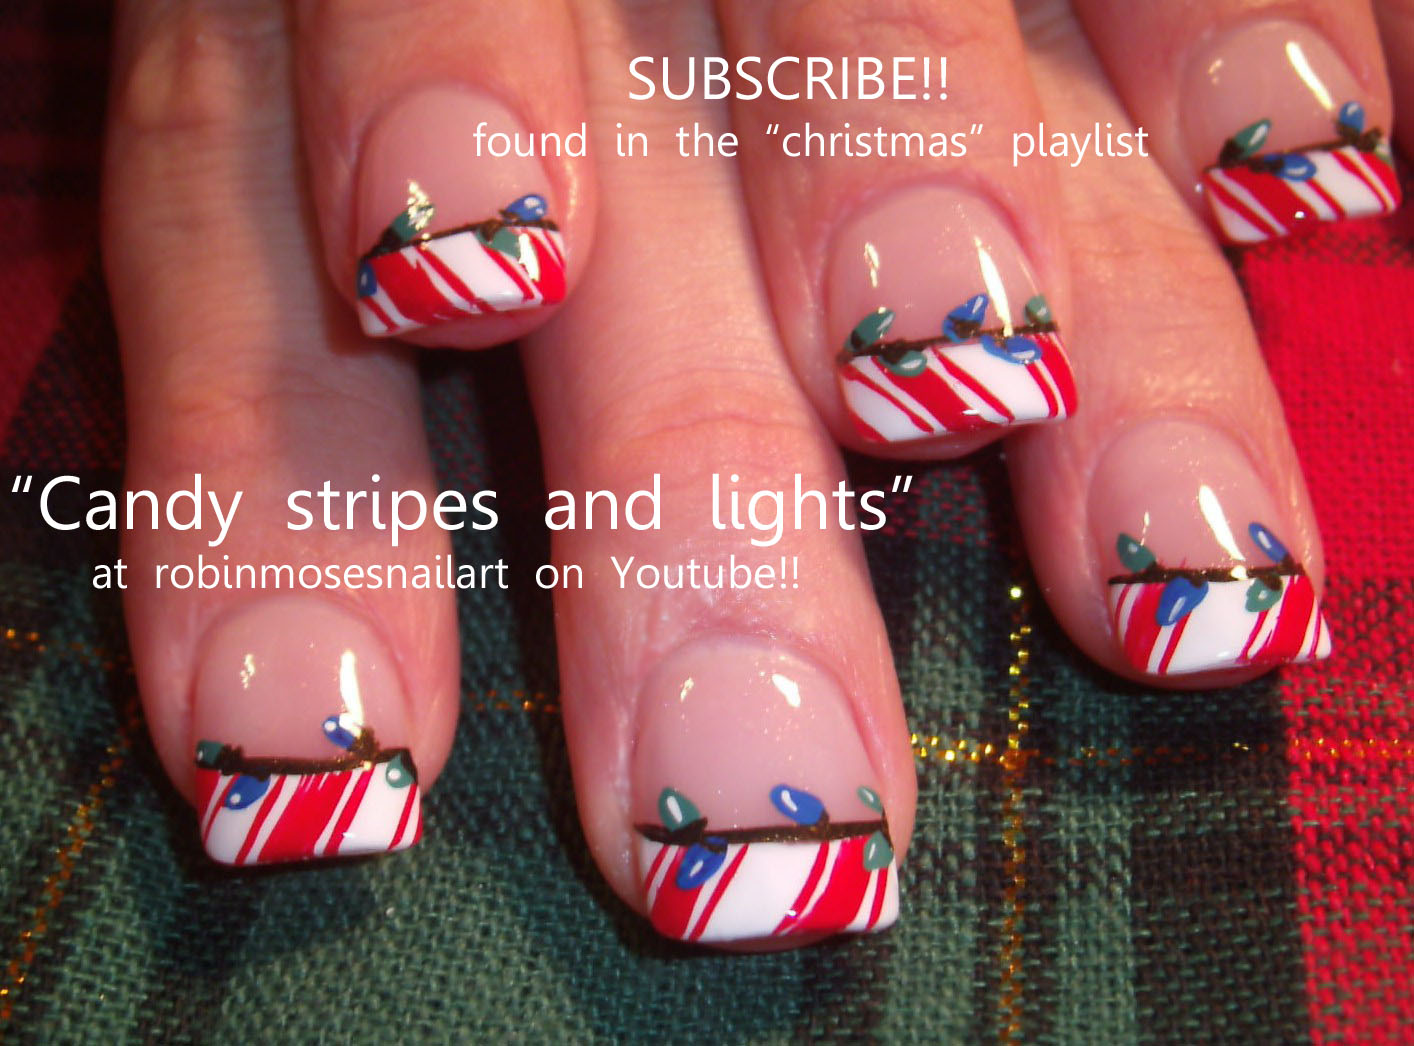 Robin moses nail art nail art christmas nail art cute christmas nail art christmas nail art cute christmas nails christmas nails christmas lights candy canes evil snowmen winter nails nail art evil snowmen prinsesfo Image collections